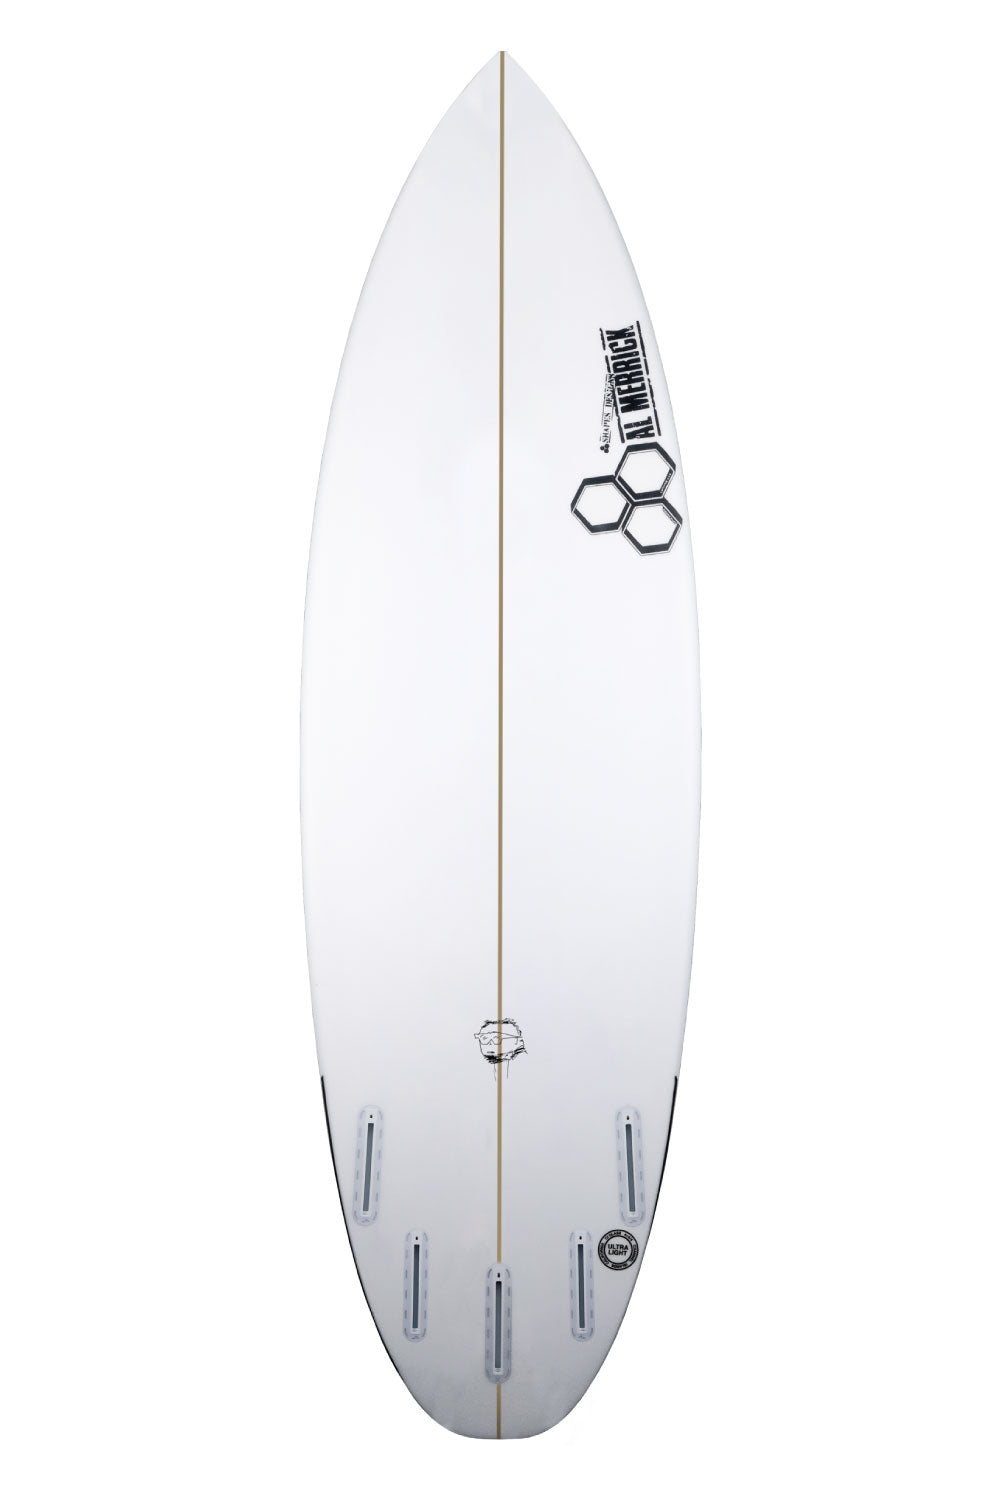 Channel Islands Neck Beard 3 Surfboard Round Tail